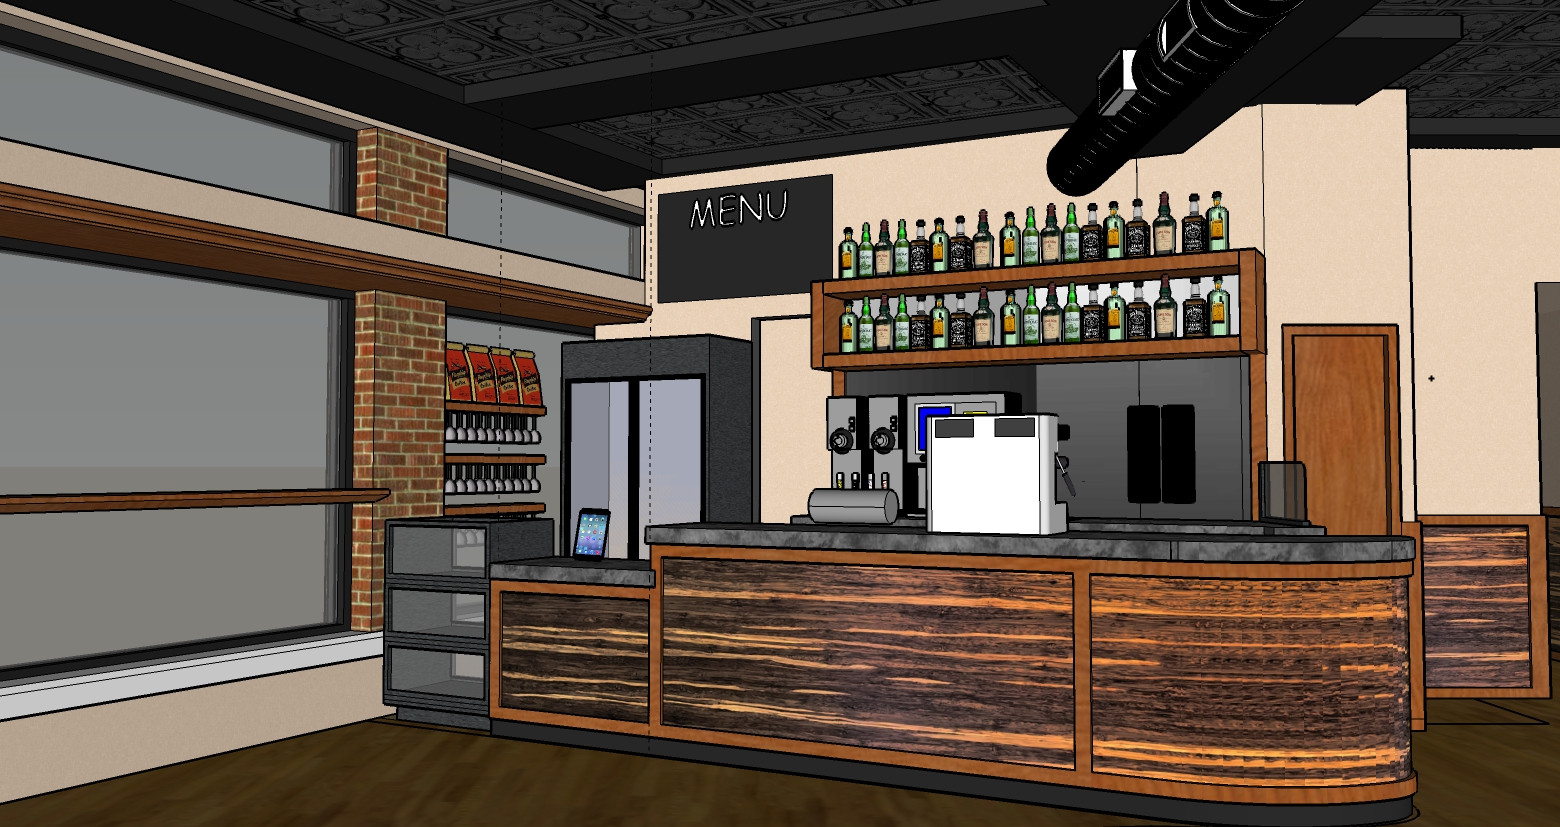 Square Root Cafe Proposed